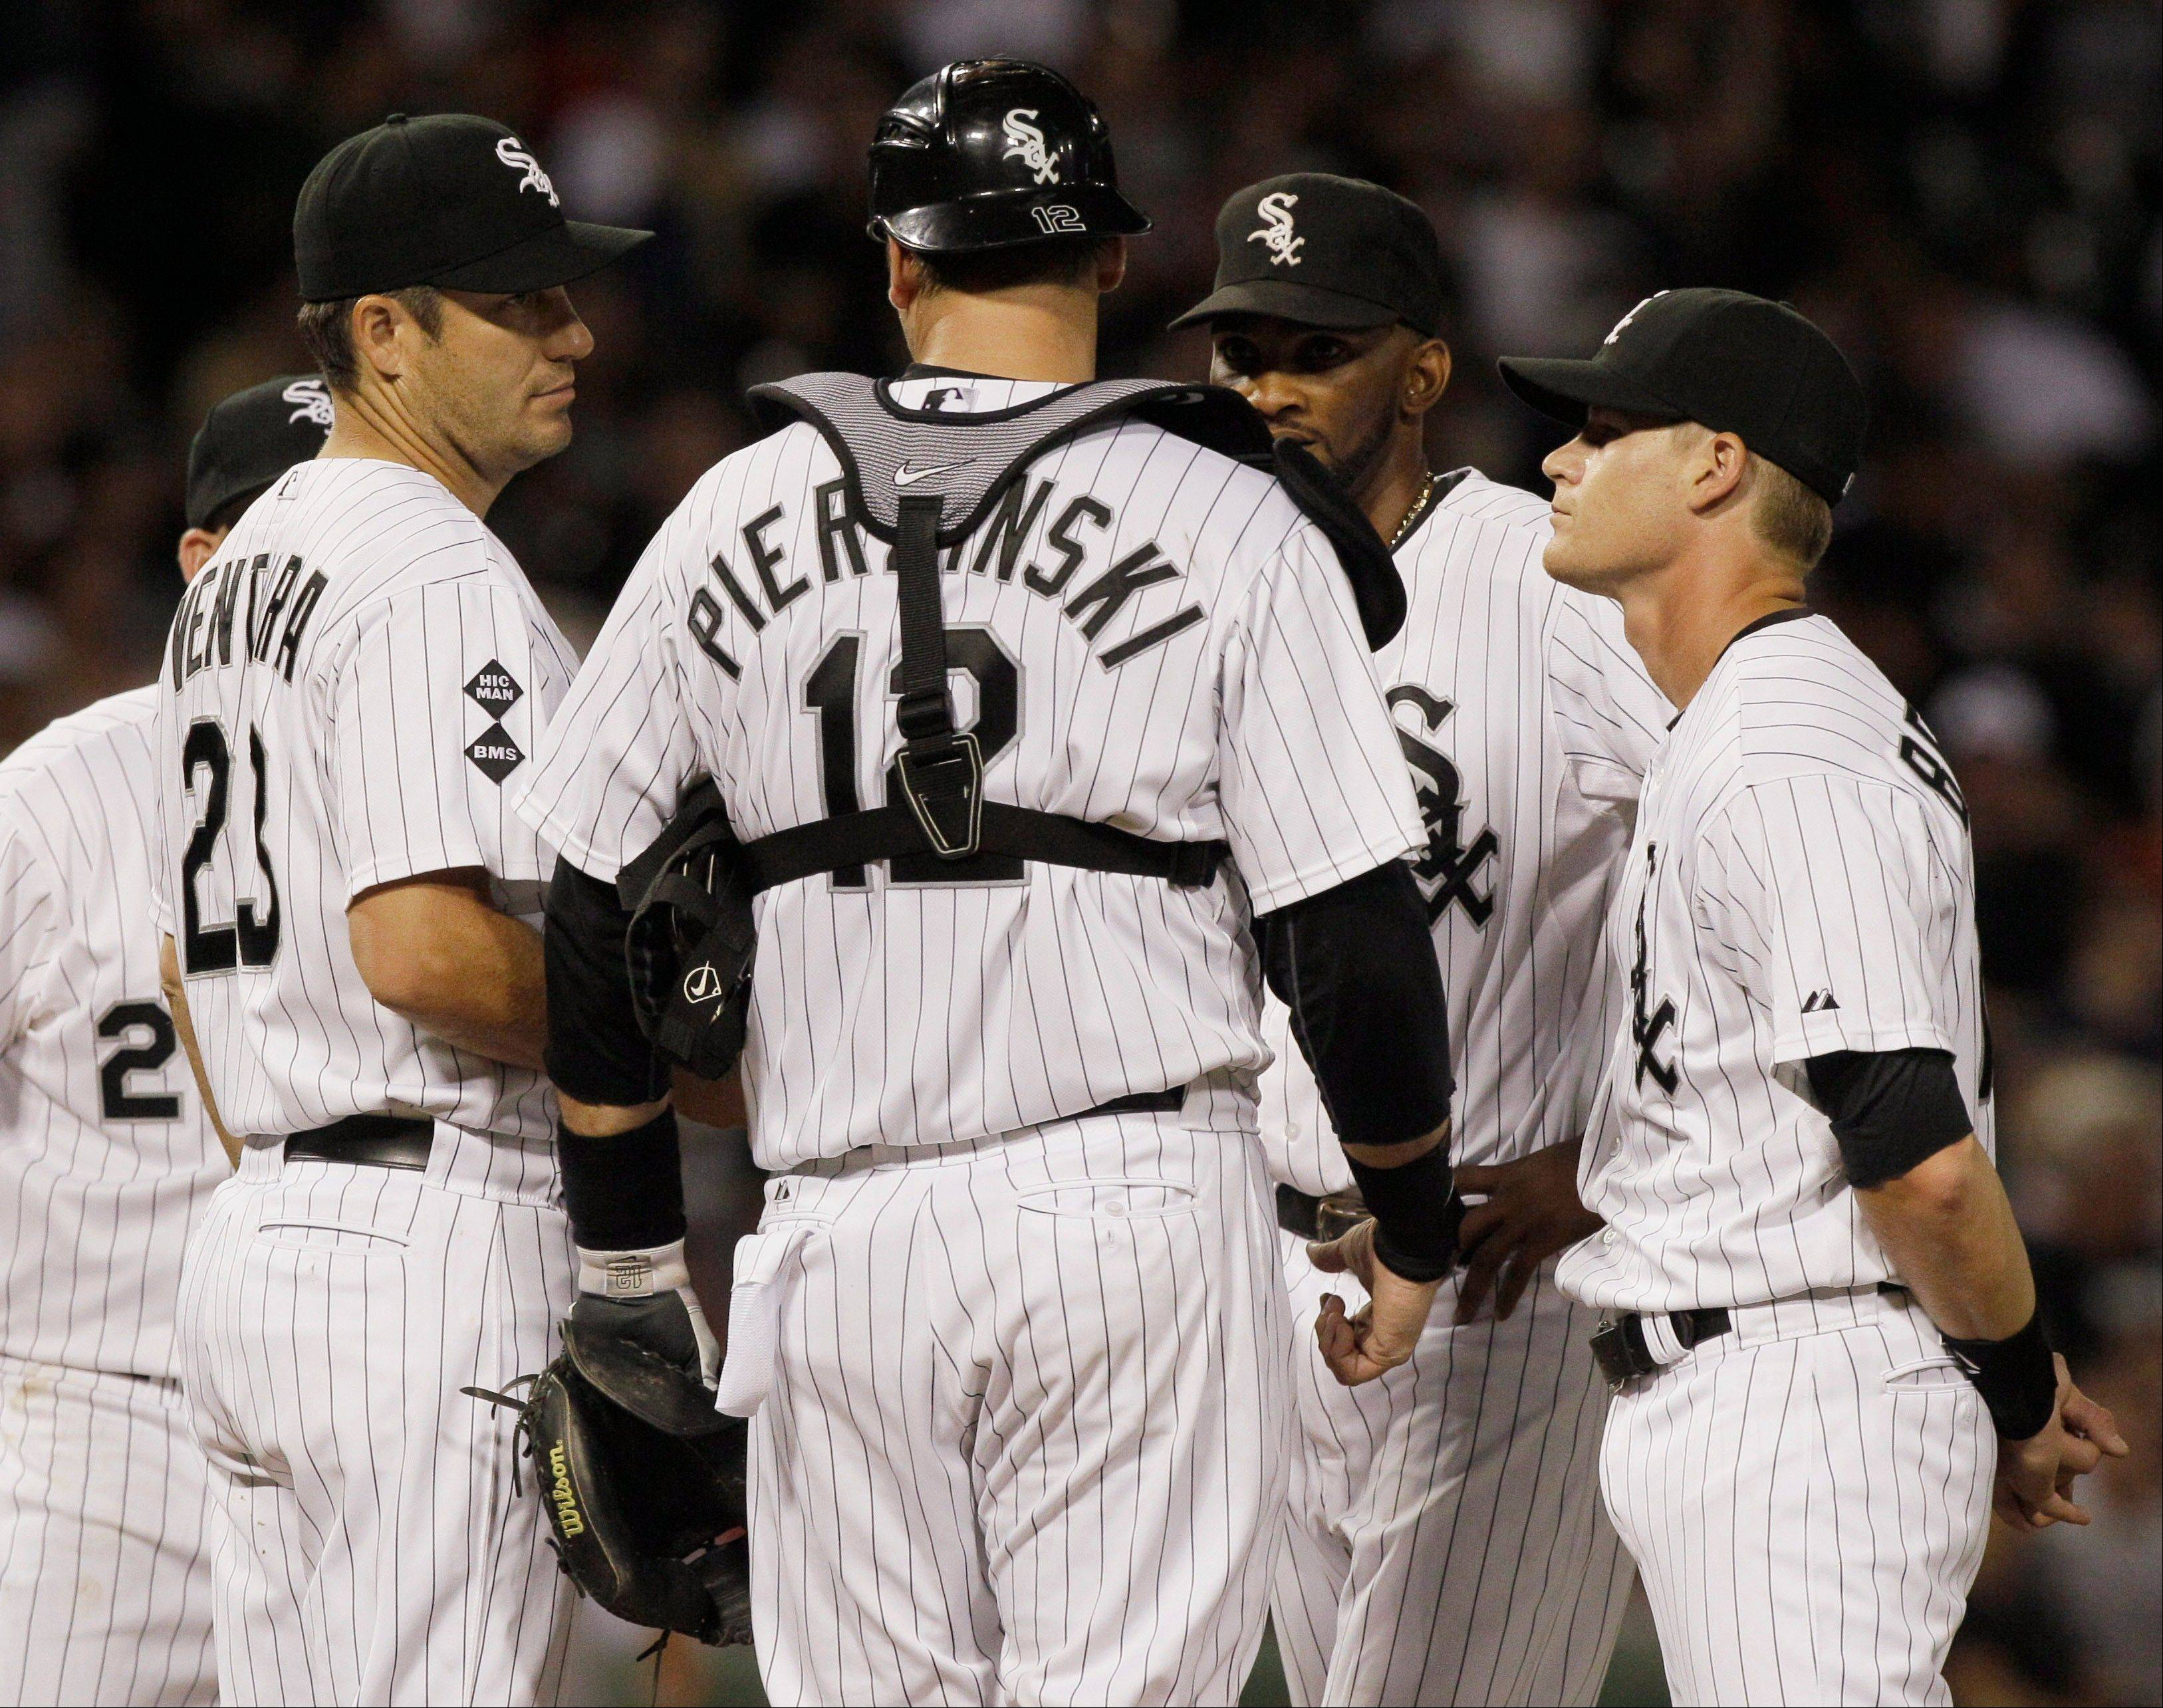 White Sox manager Robin Ventura, far left, discusses the situation with A.J. Pierzynski, Alexei Ramirez, second from right, and Gordon Beckham as they wait for relief pitcher Nate Jones during the seventh inning Saturday night.